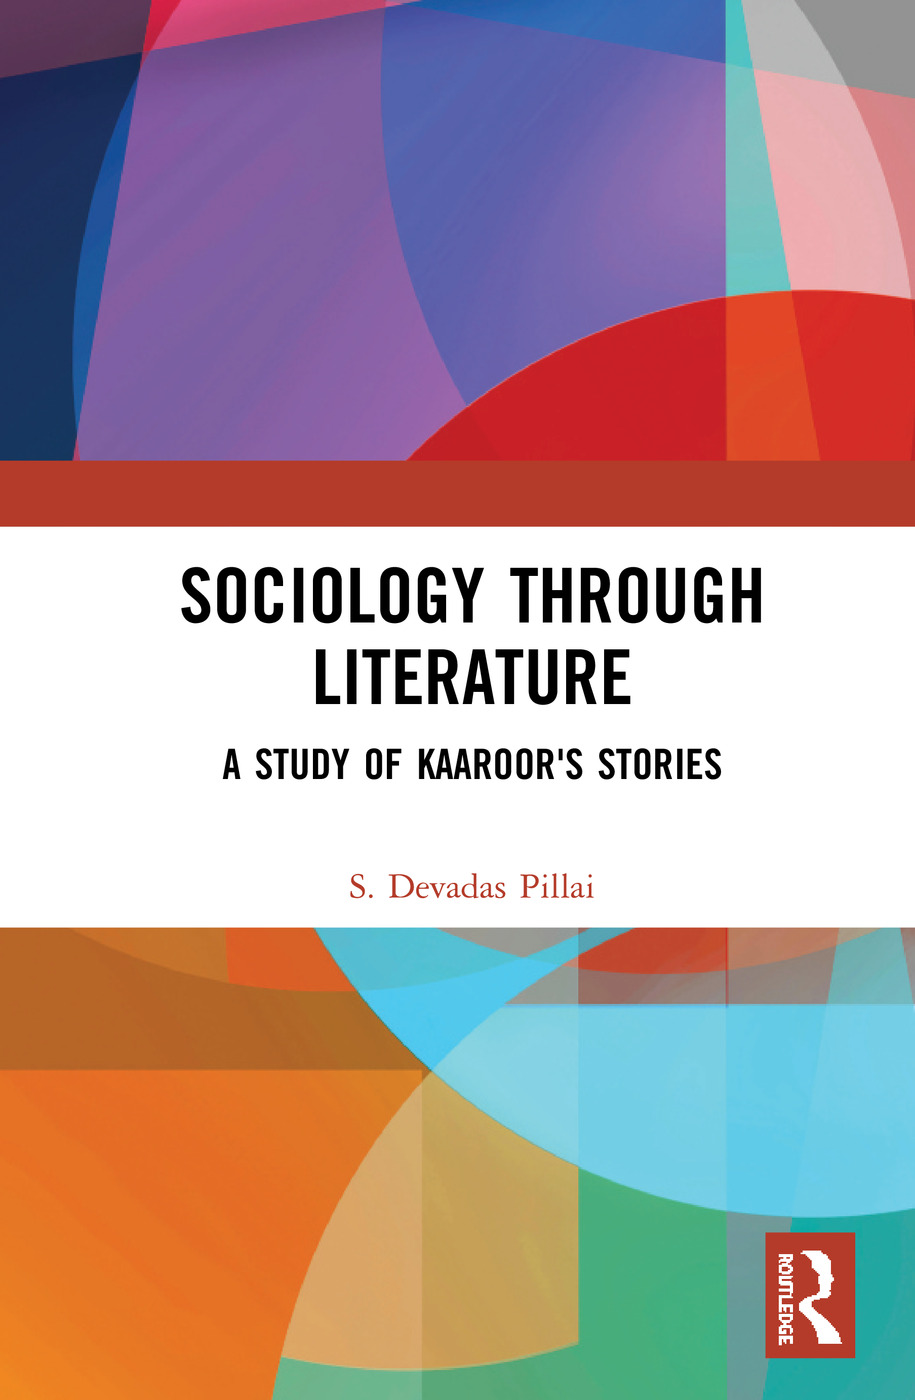 Sociology Through Literature: A Study of Kaaroor's Stories, 1st Edition (Hardback) book cover